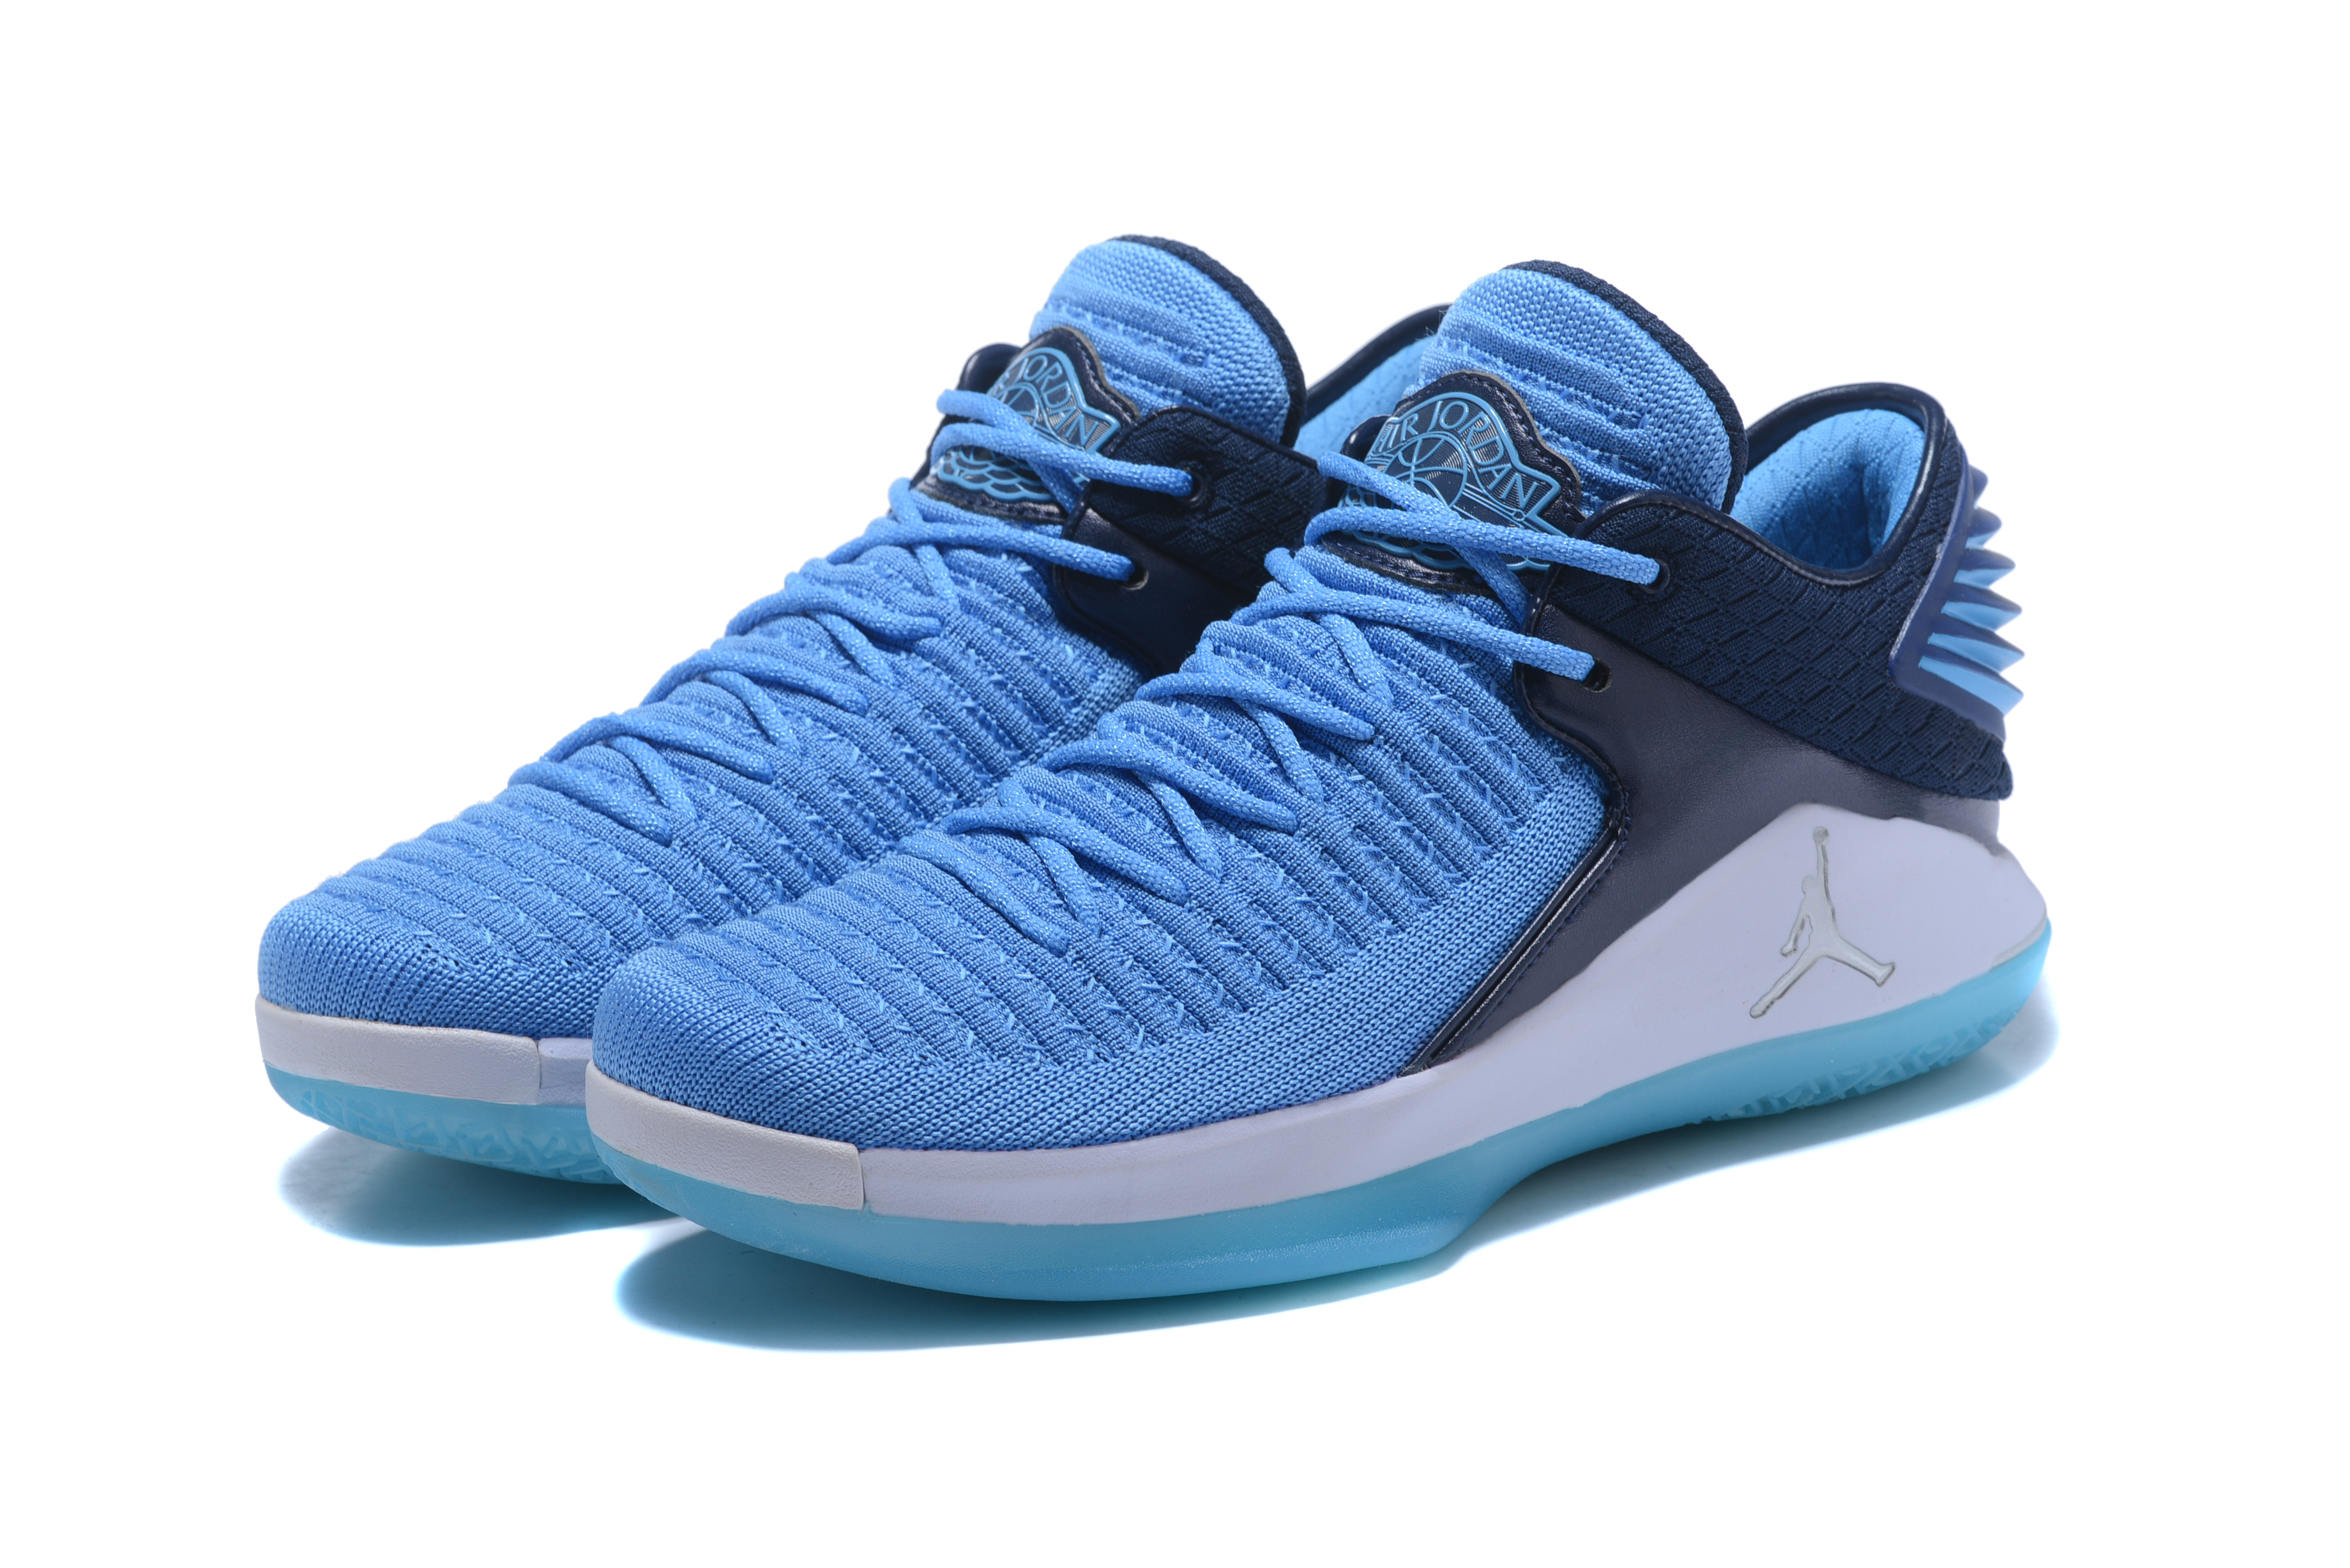 2018 Jordan 32 Low Blue Black White